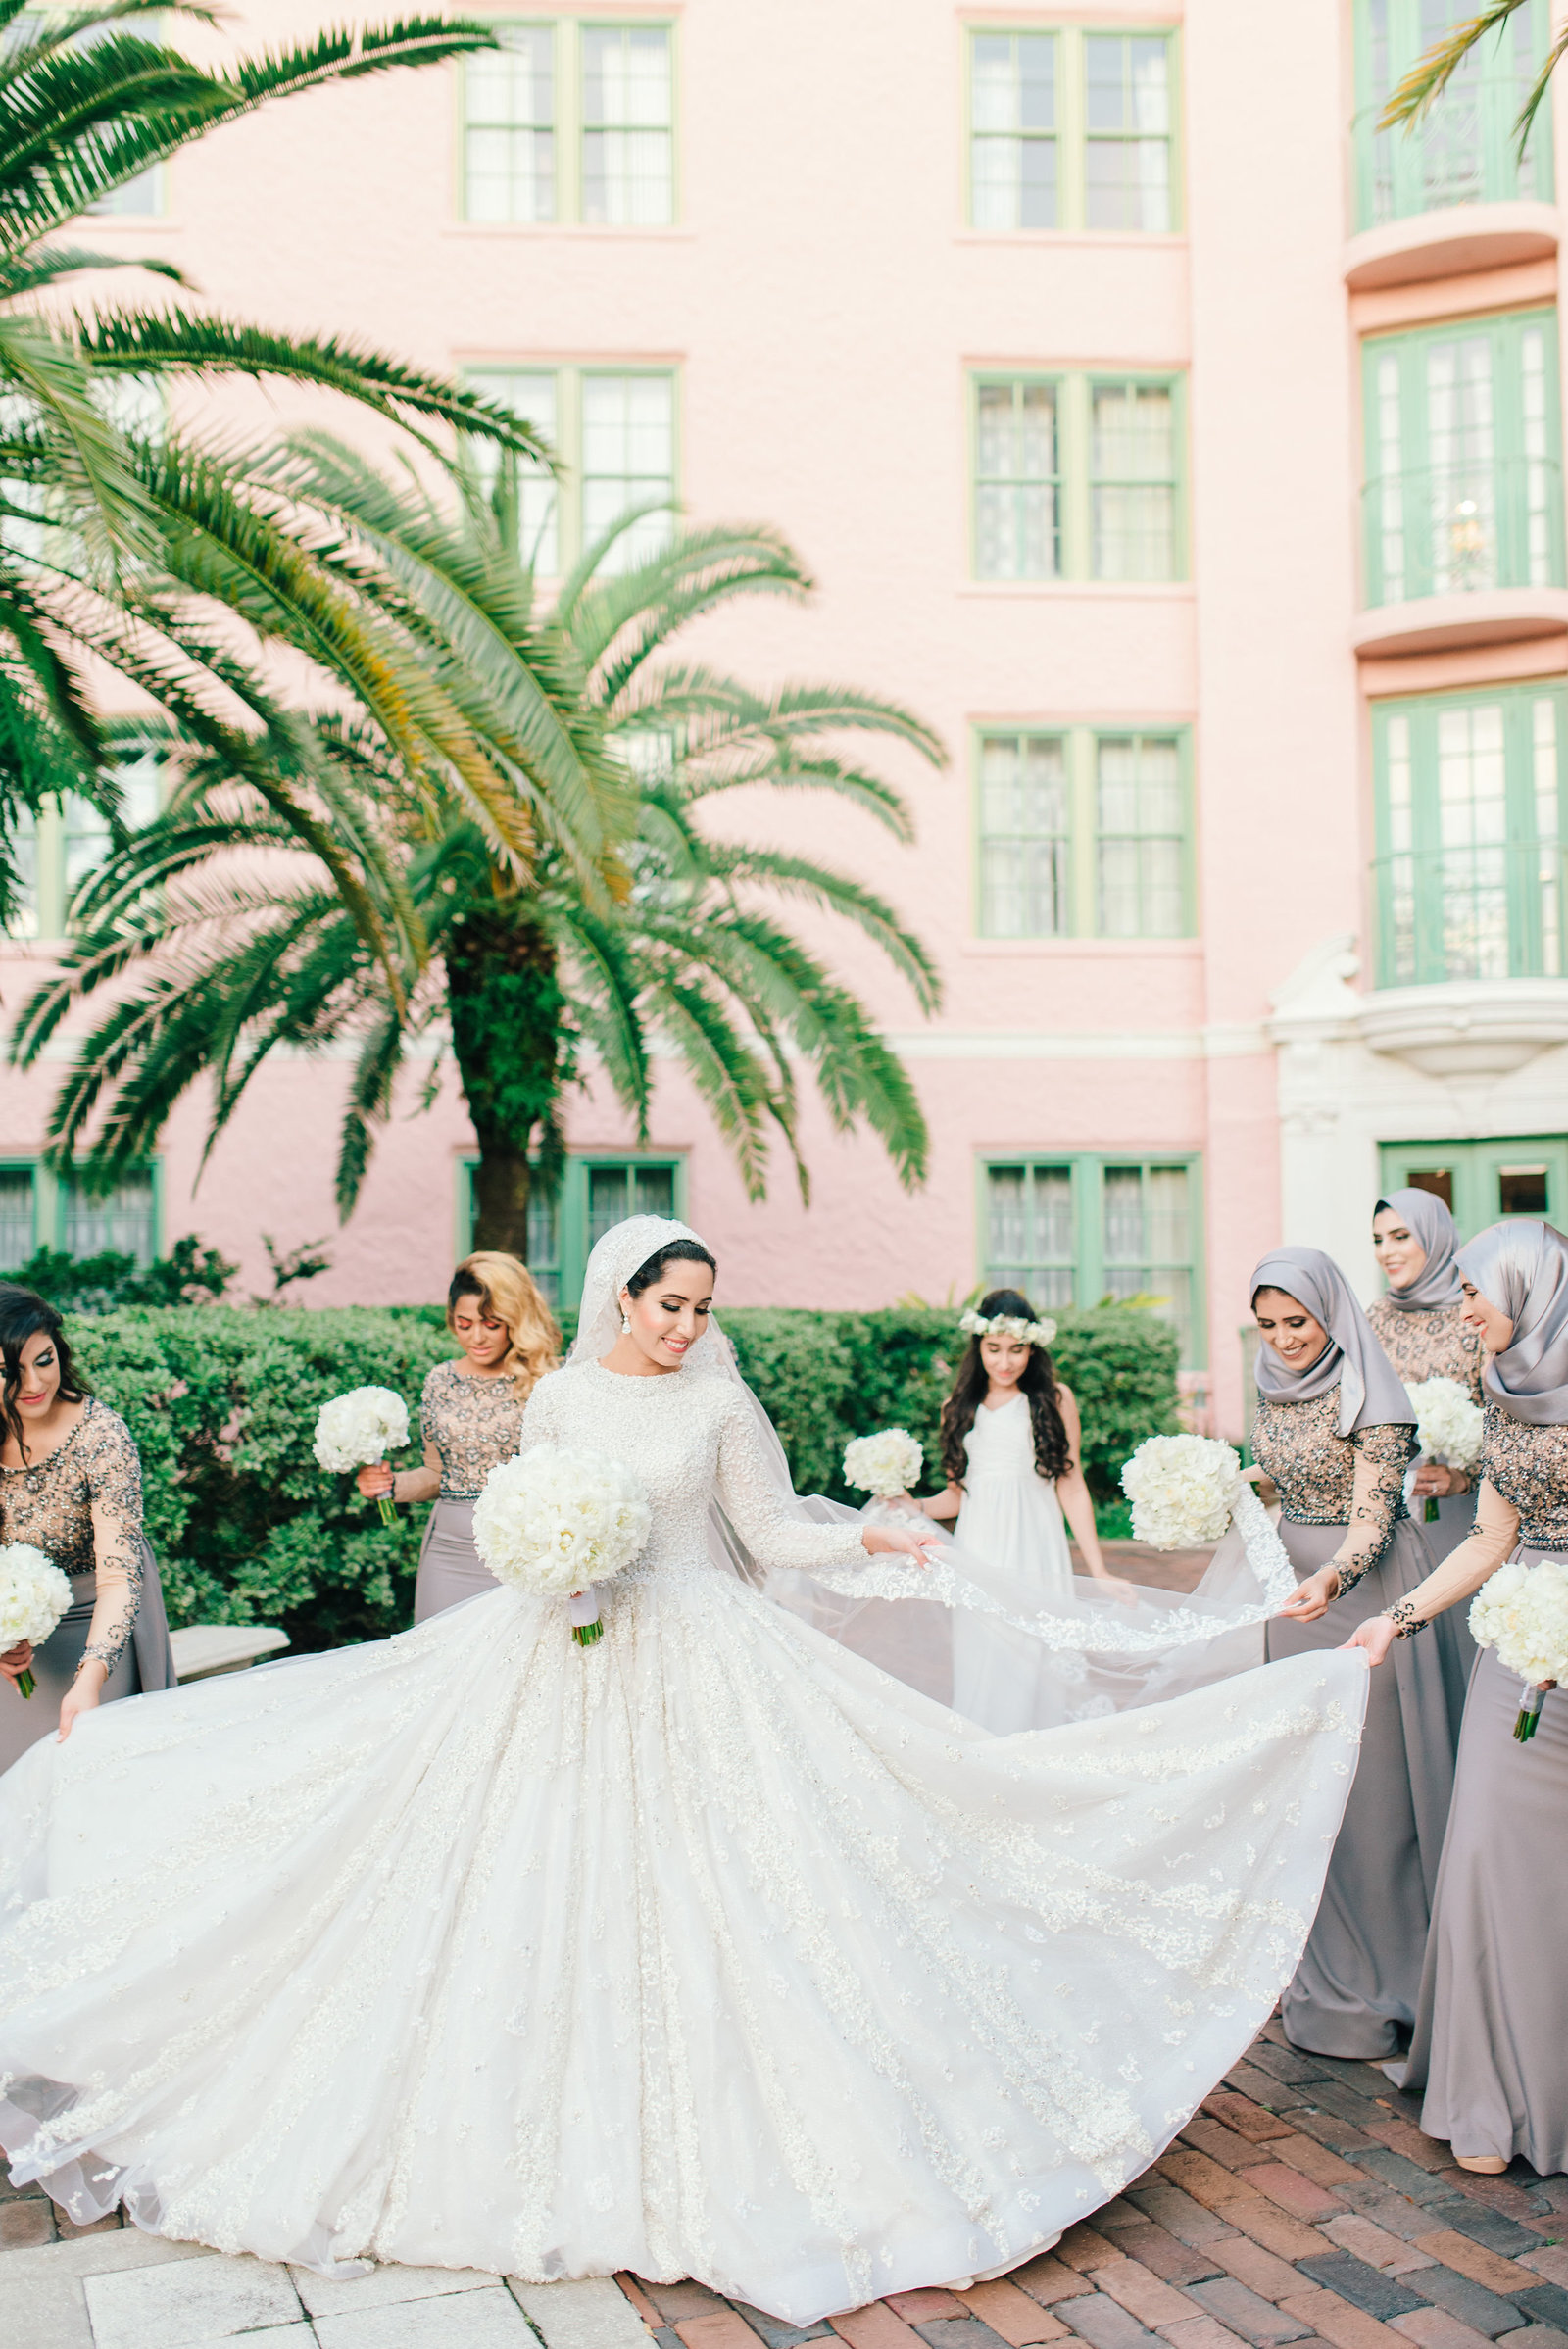 LTP_605Noor & Ahmad Vinoy Renaissance Wedding in St. Petersburg by Ledia Tashi Photography8